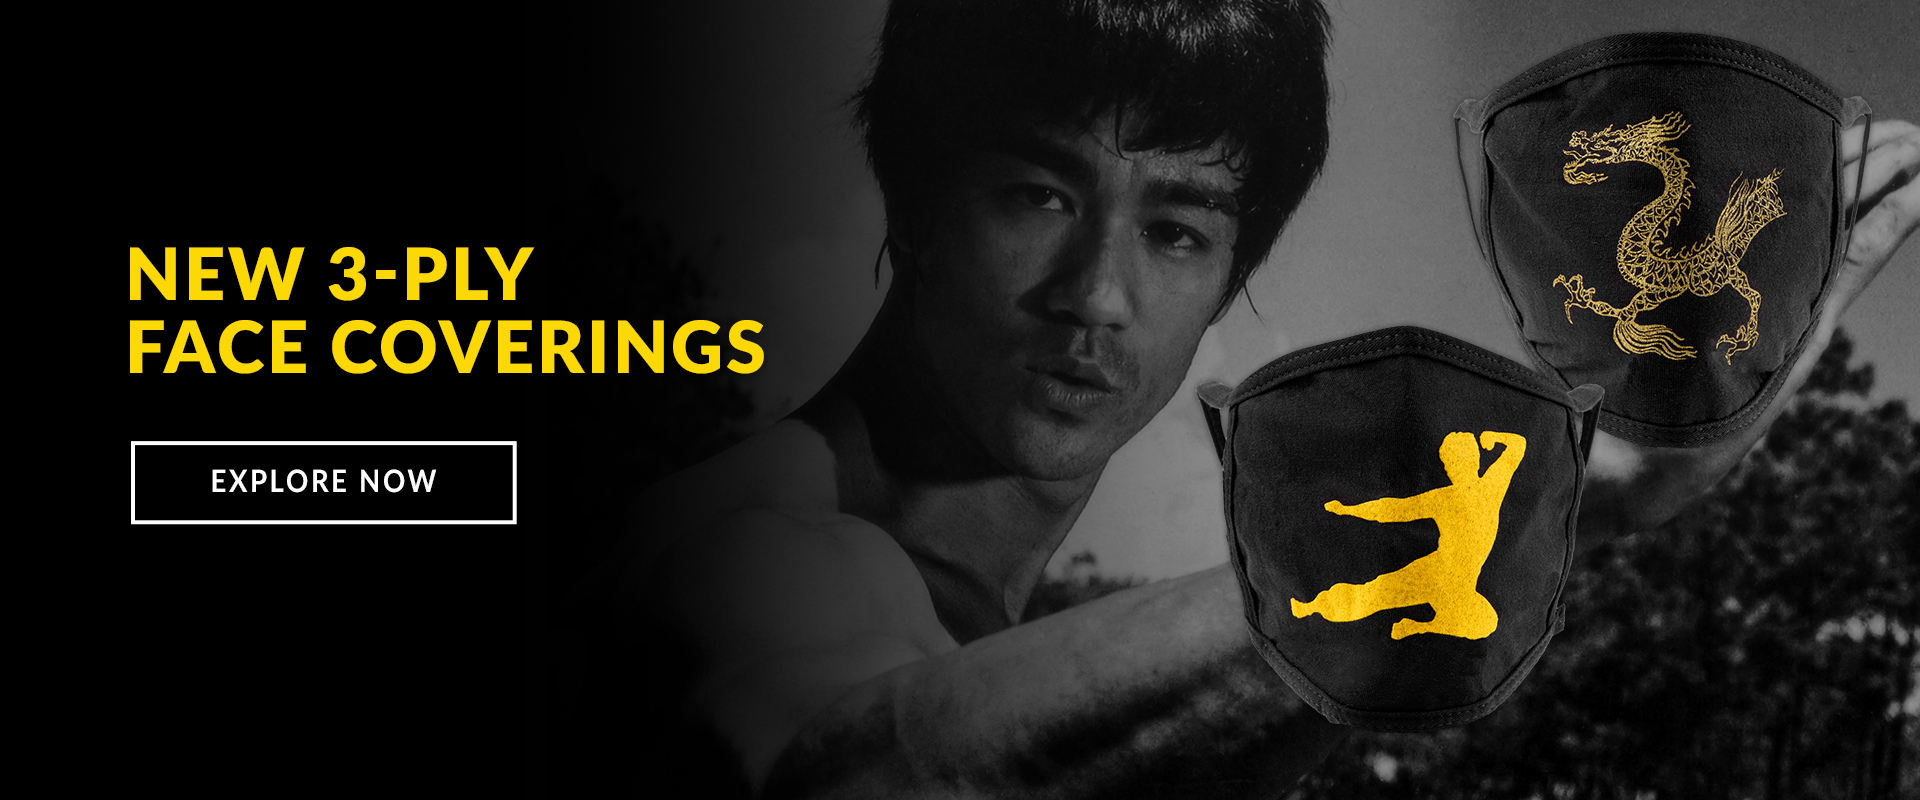 Bruce Lee 3-Ply Face Covers